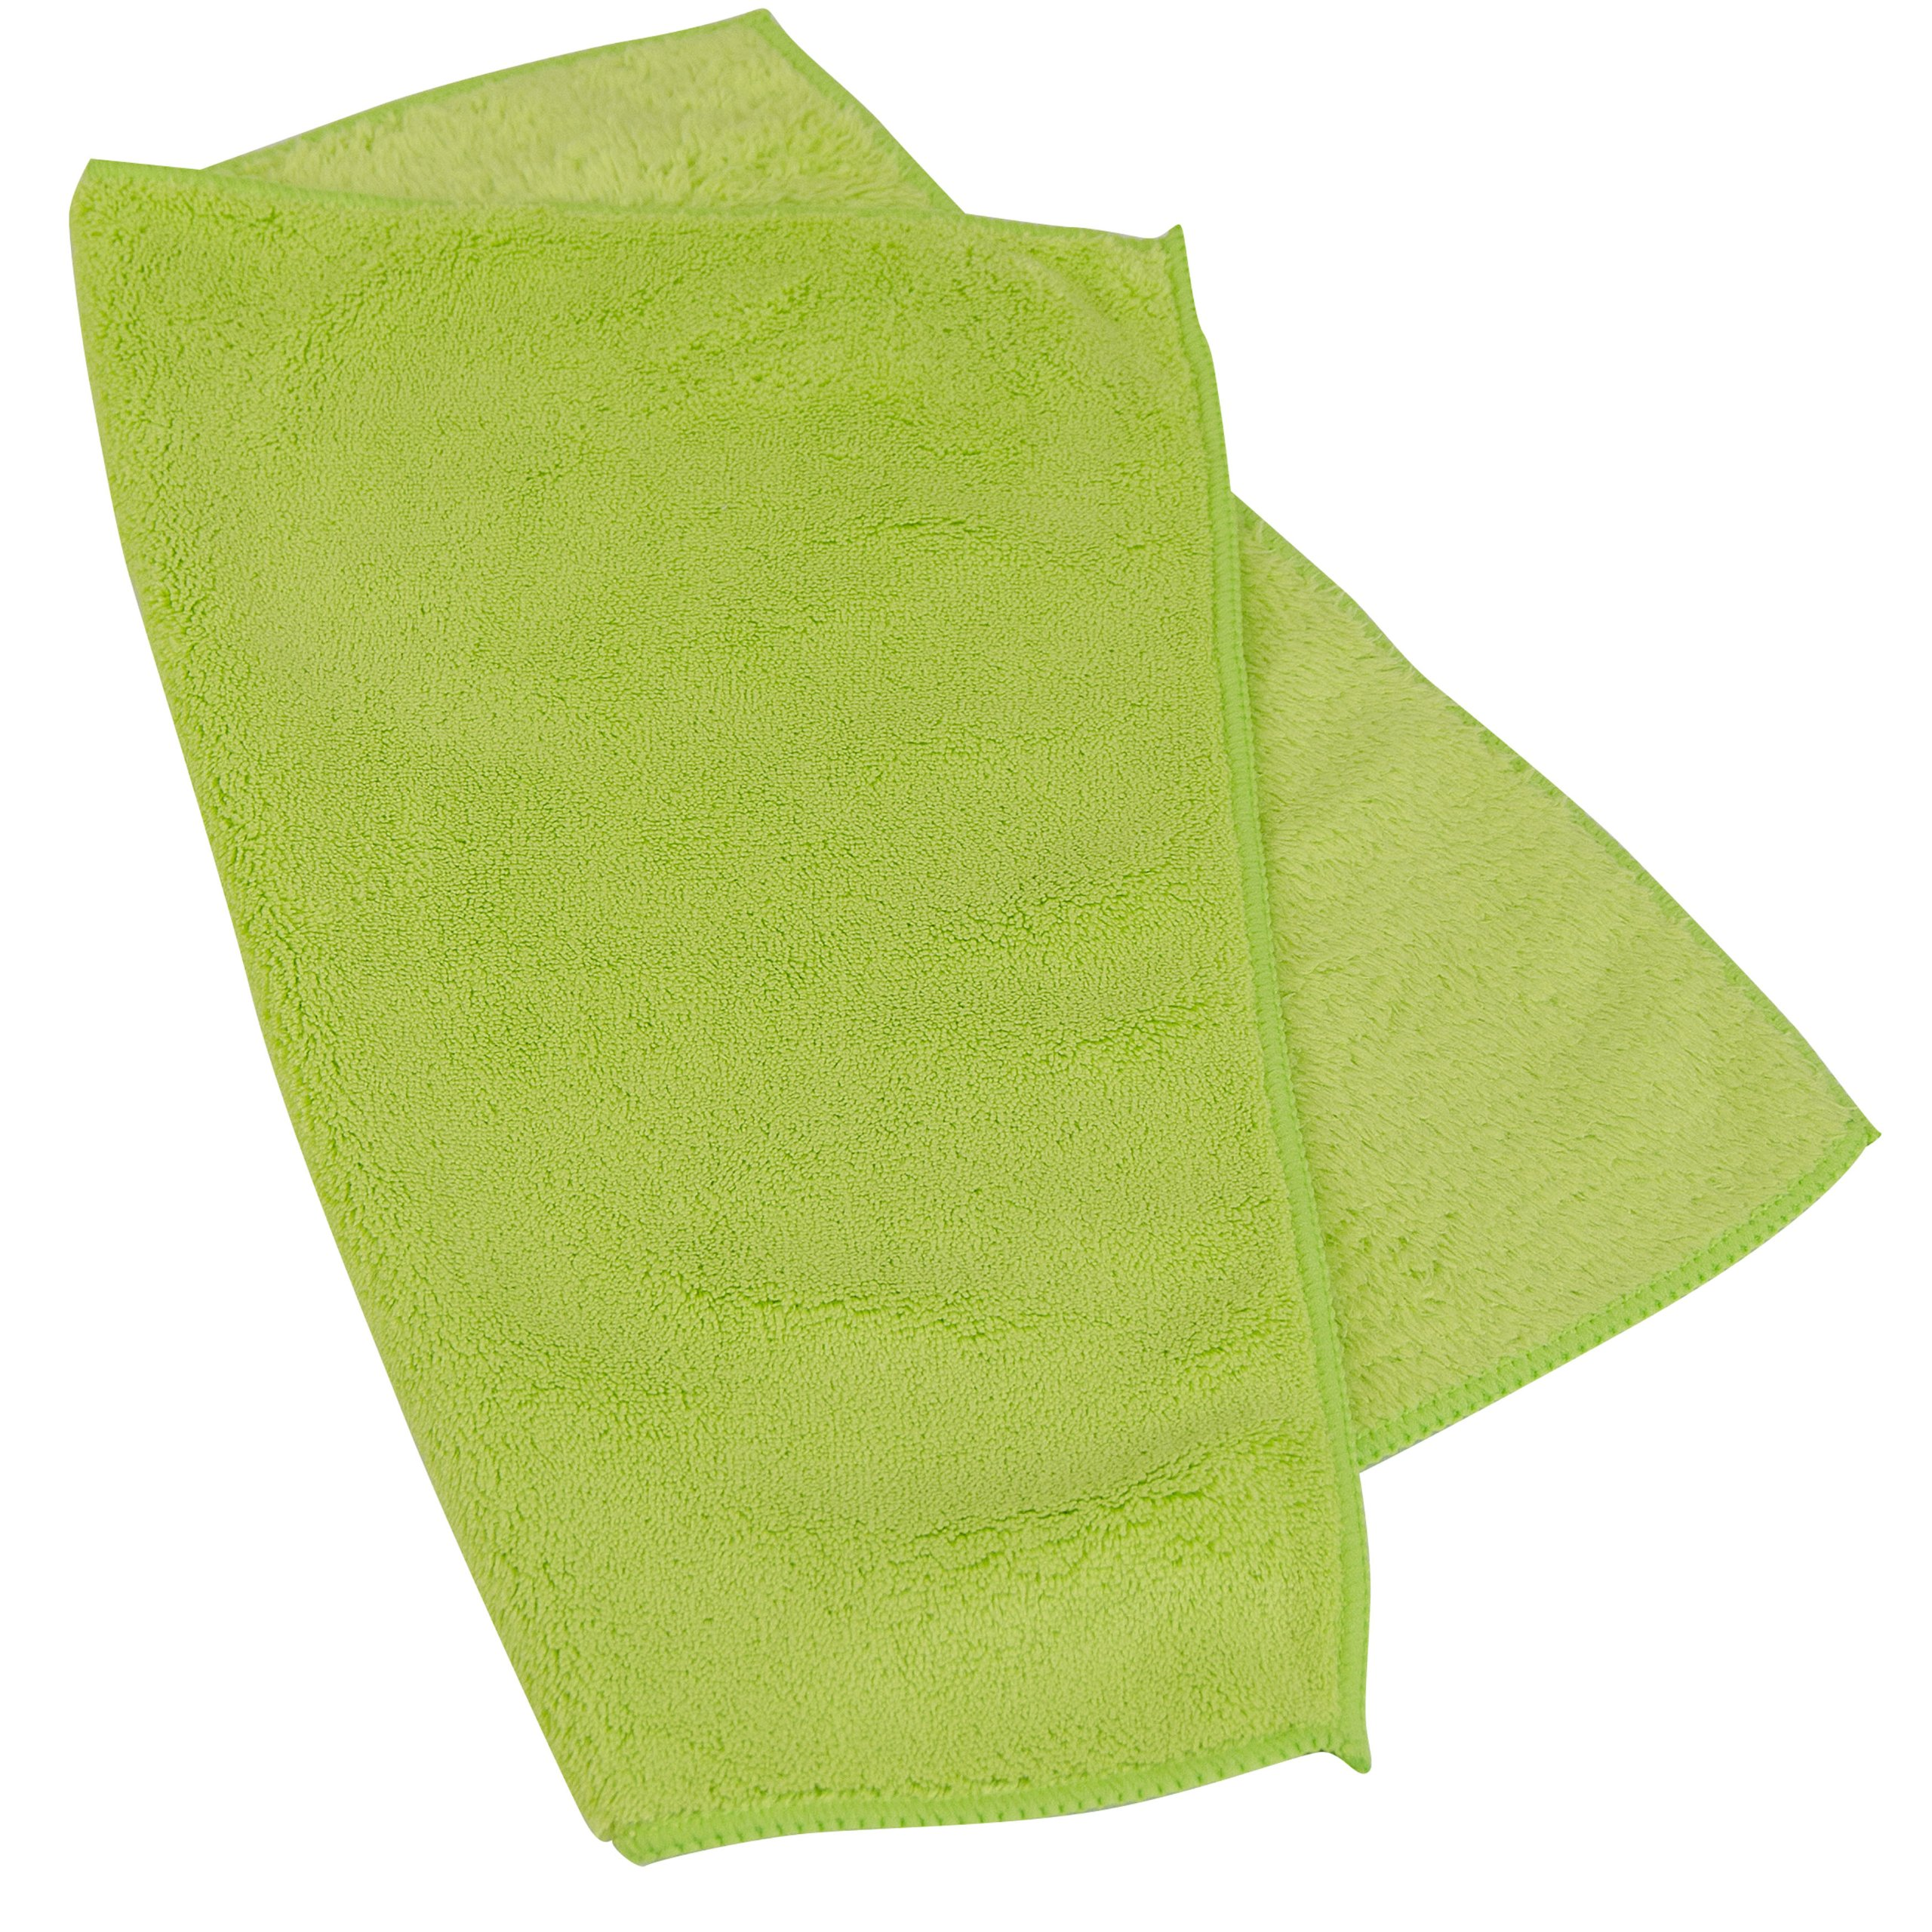 Quickie Auto Pro Ultra Plush Polishing Cloth product image